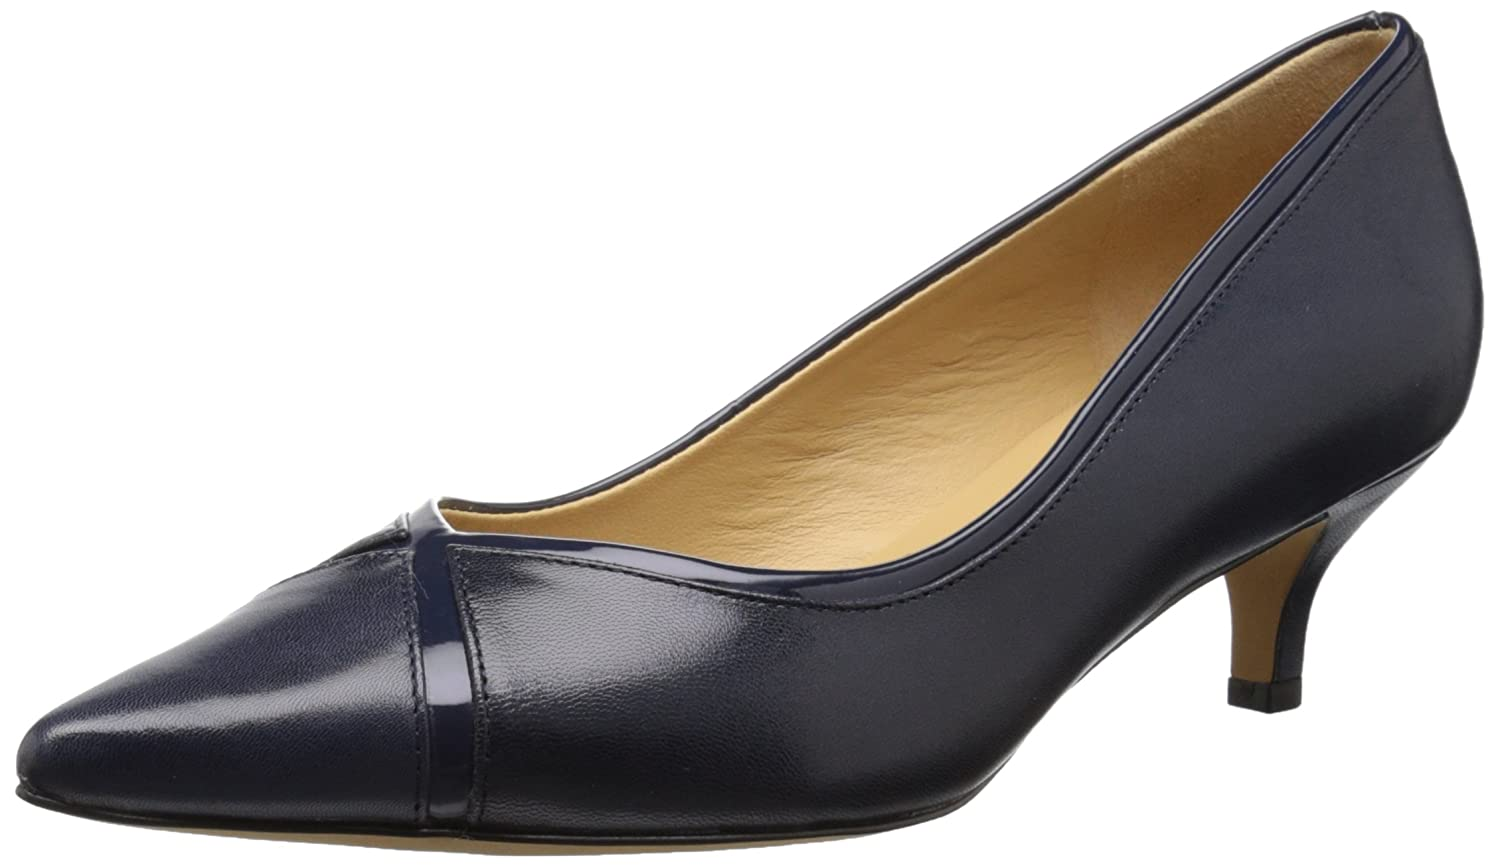 Trotters Women's Kelsey Dress Pump B011EZGX0U 7 B(M) US|Navy